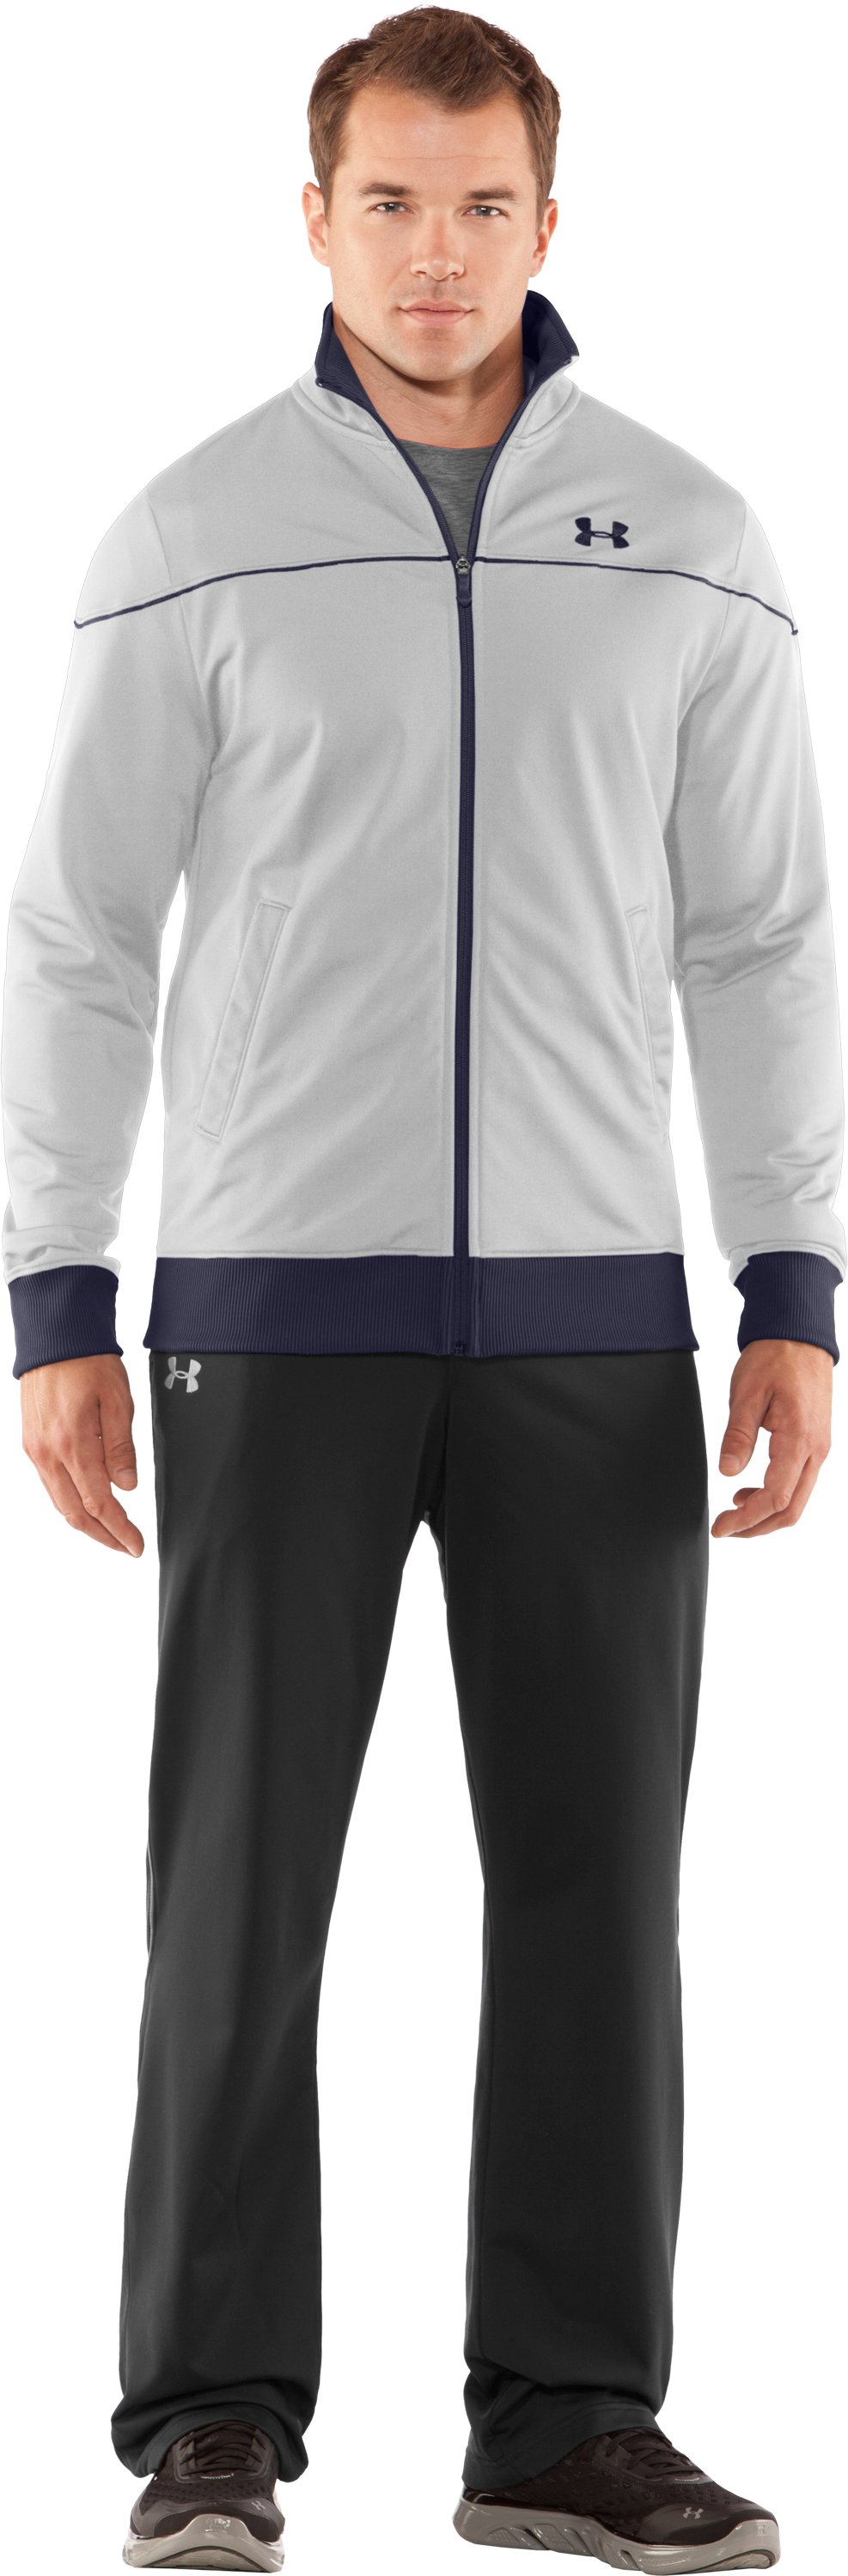 Men's UA Strength Track Jacket, White